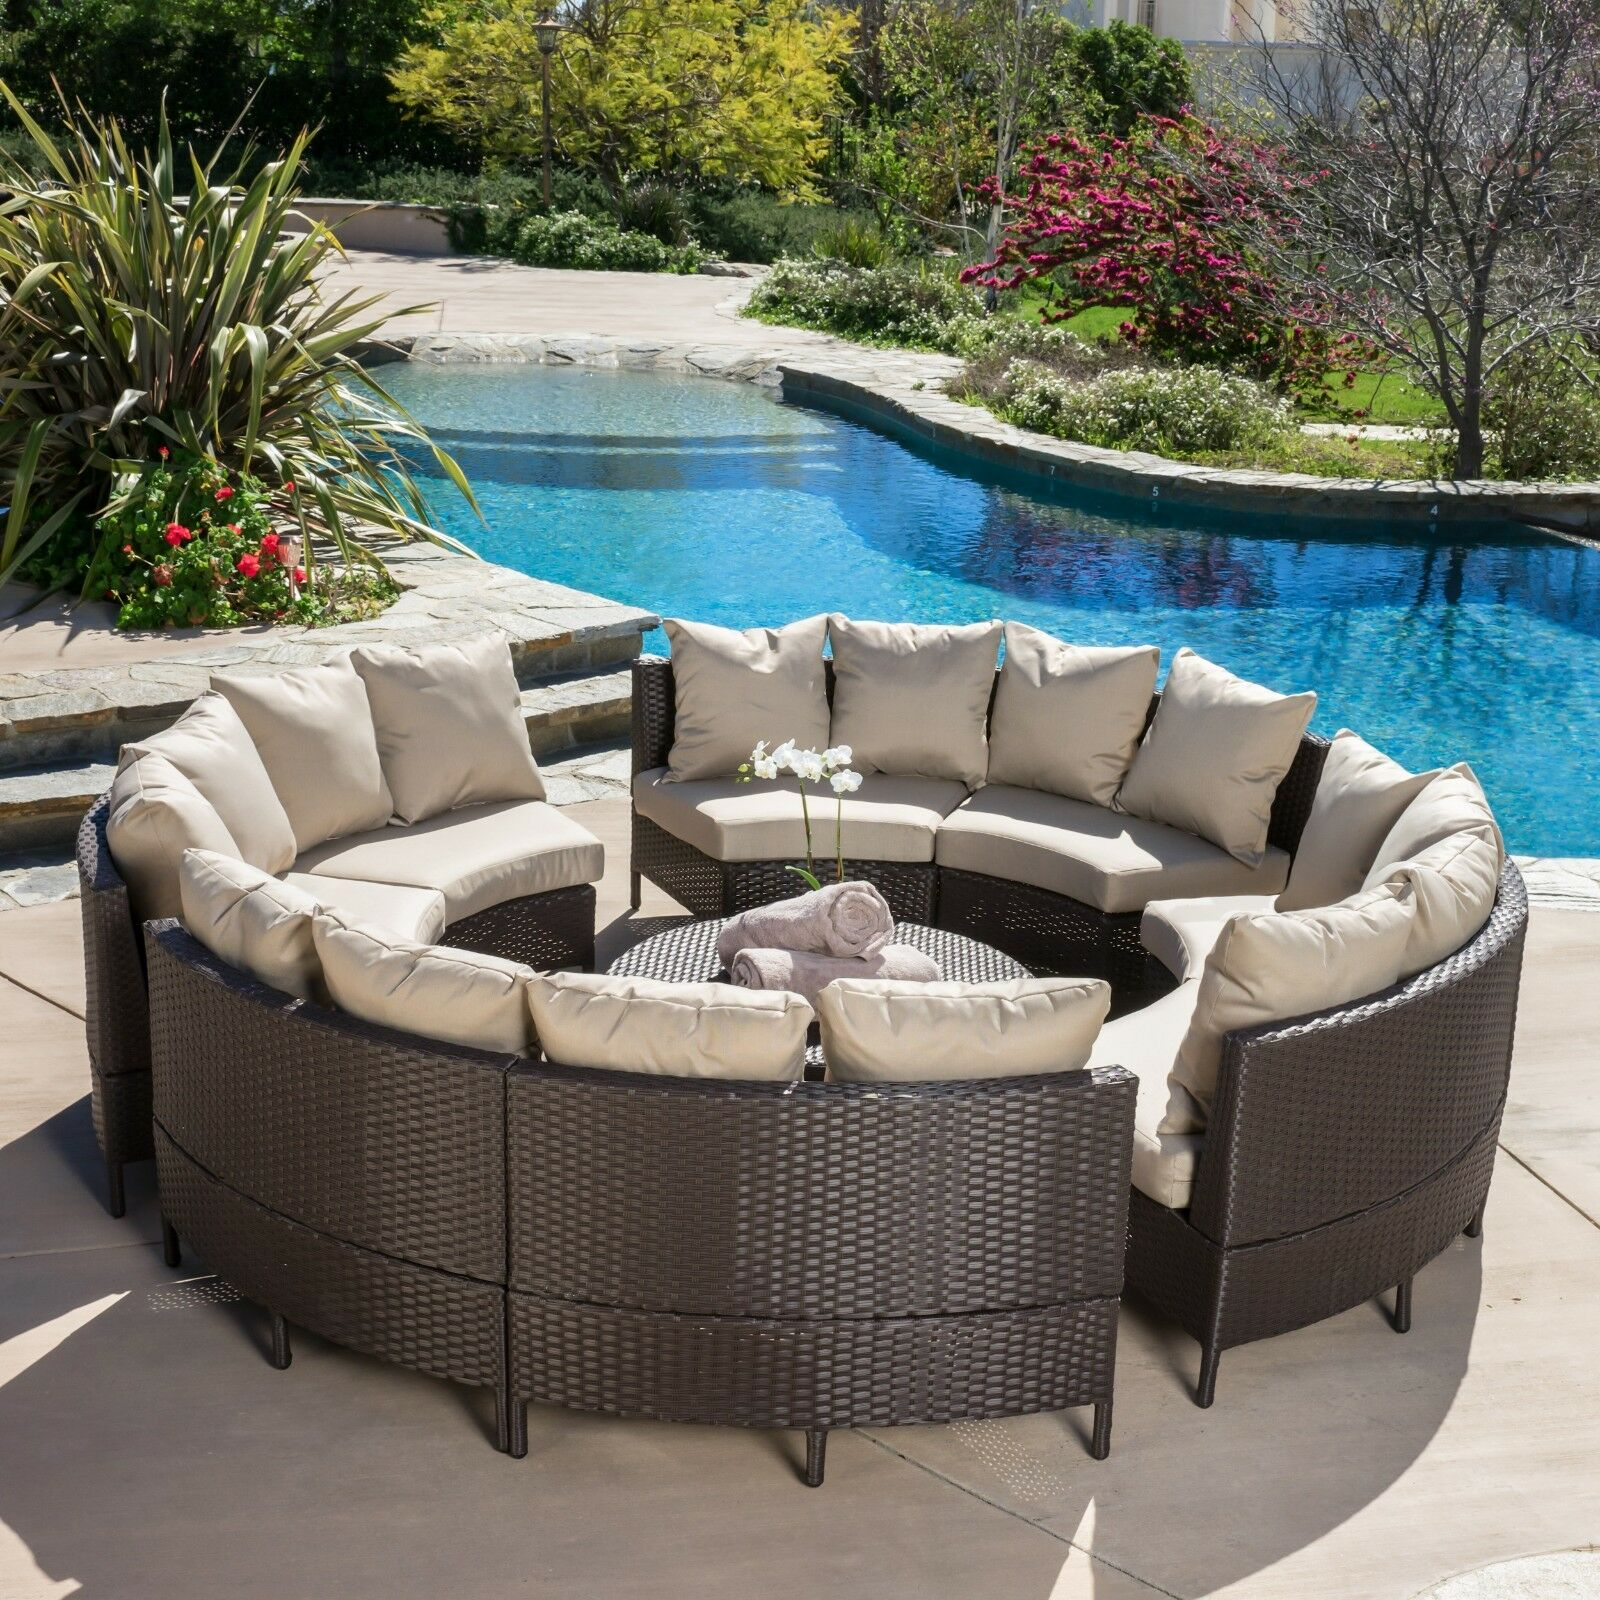 Elegant Outdoor Patio Furniture 10pc Dark Brown PE Wicker Sofa